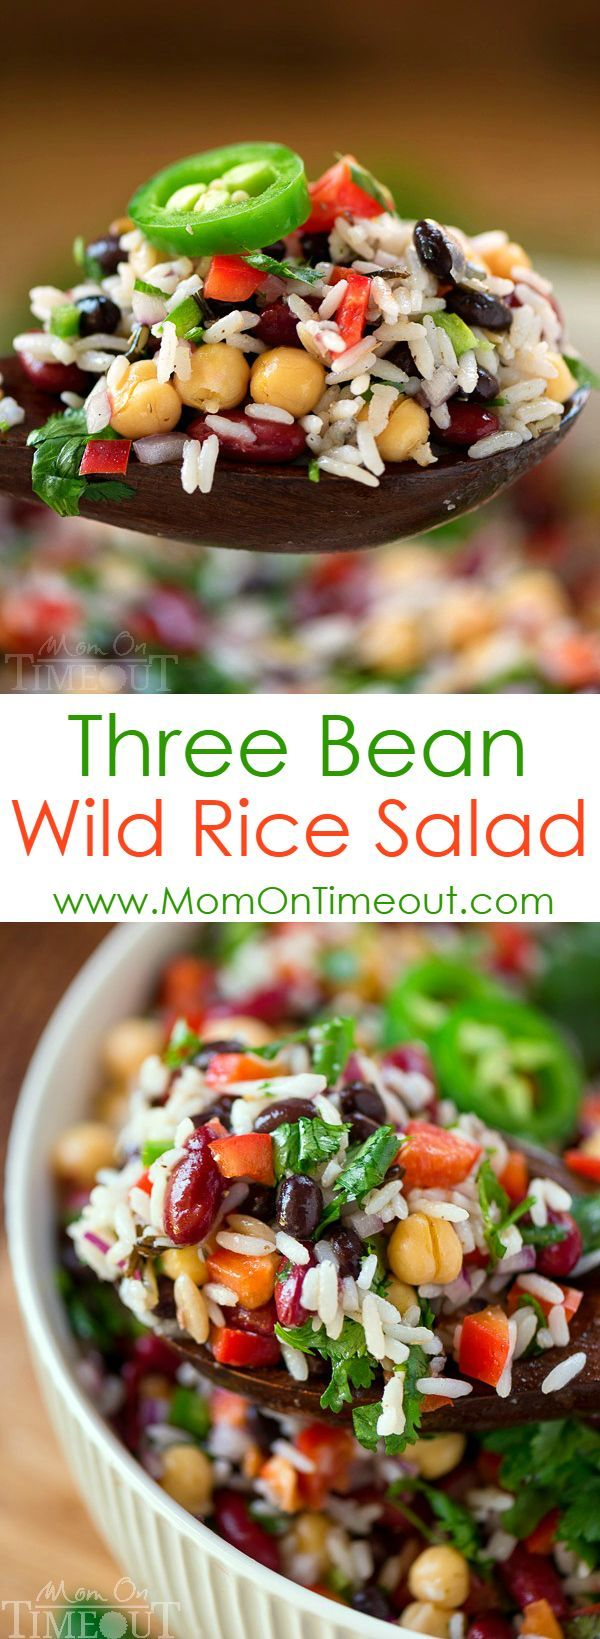 Three Bean Wild Rice Salad on MyRecipeMagic.com | On hot summer nights, turn to this Three Bean Wild Rice Salad for an easy and delicious light dinner that your family will DEVOUR. It also makes the perfect side dish for barbecues, parties, cookouts and more!